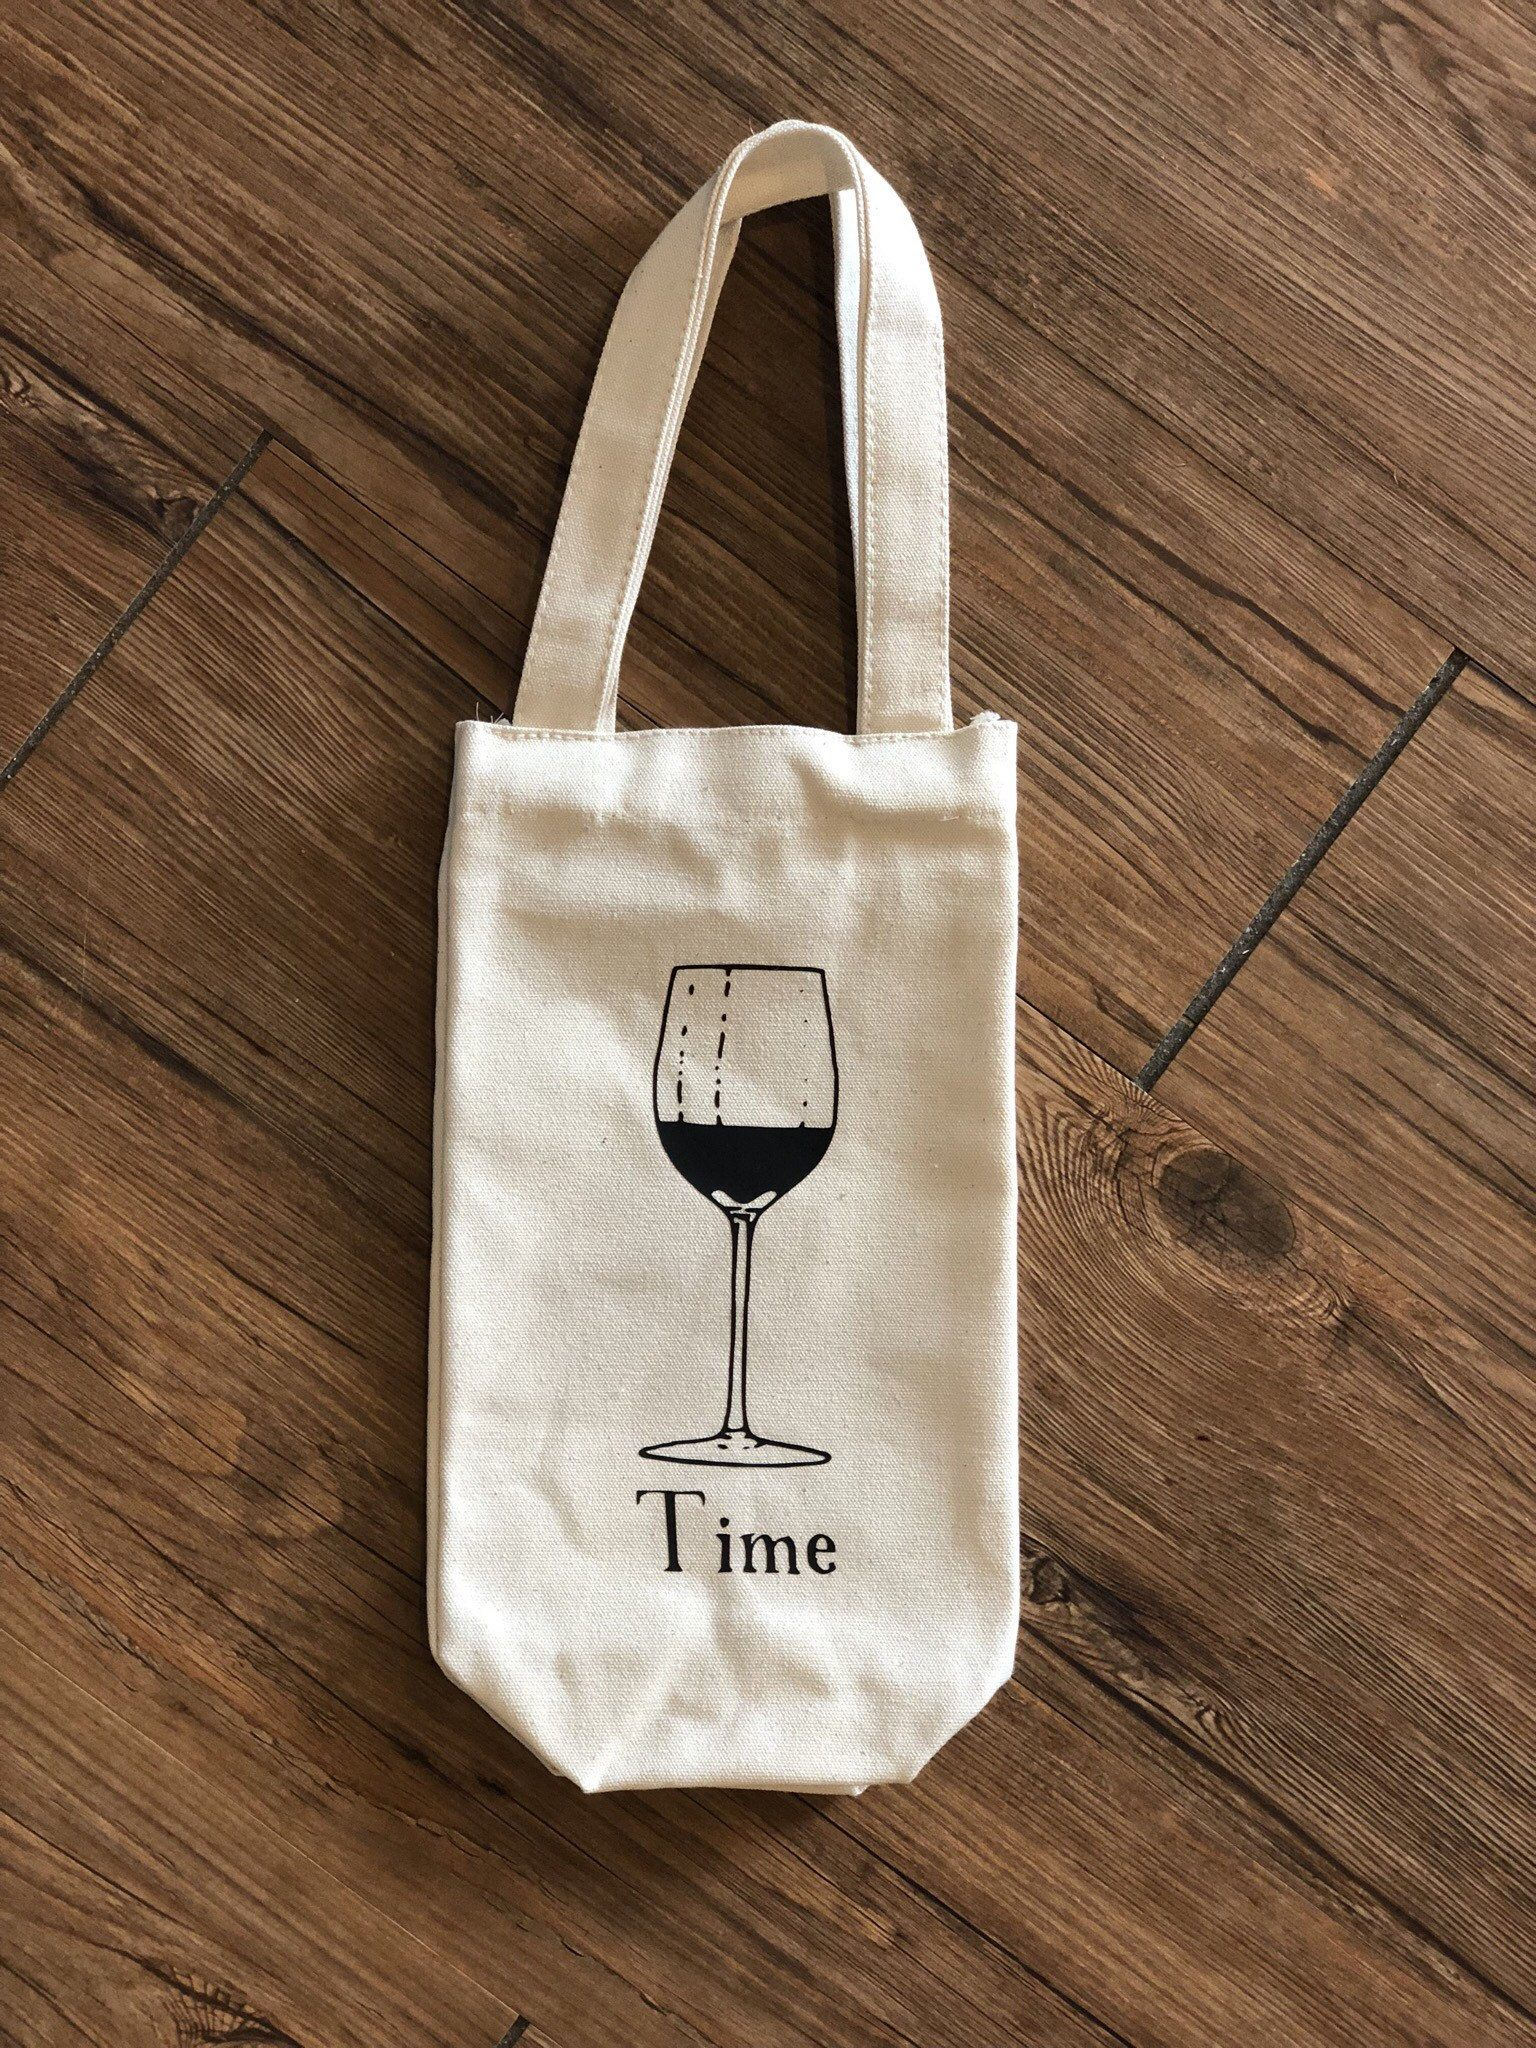 Wine Time Canvas Wine Bag By Factorv On Etsy Canvas Wine Bag Canvas Bag Design Canvas Wine Tote